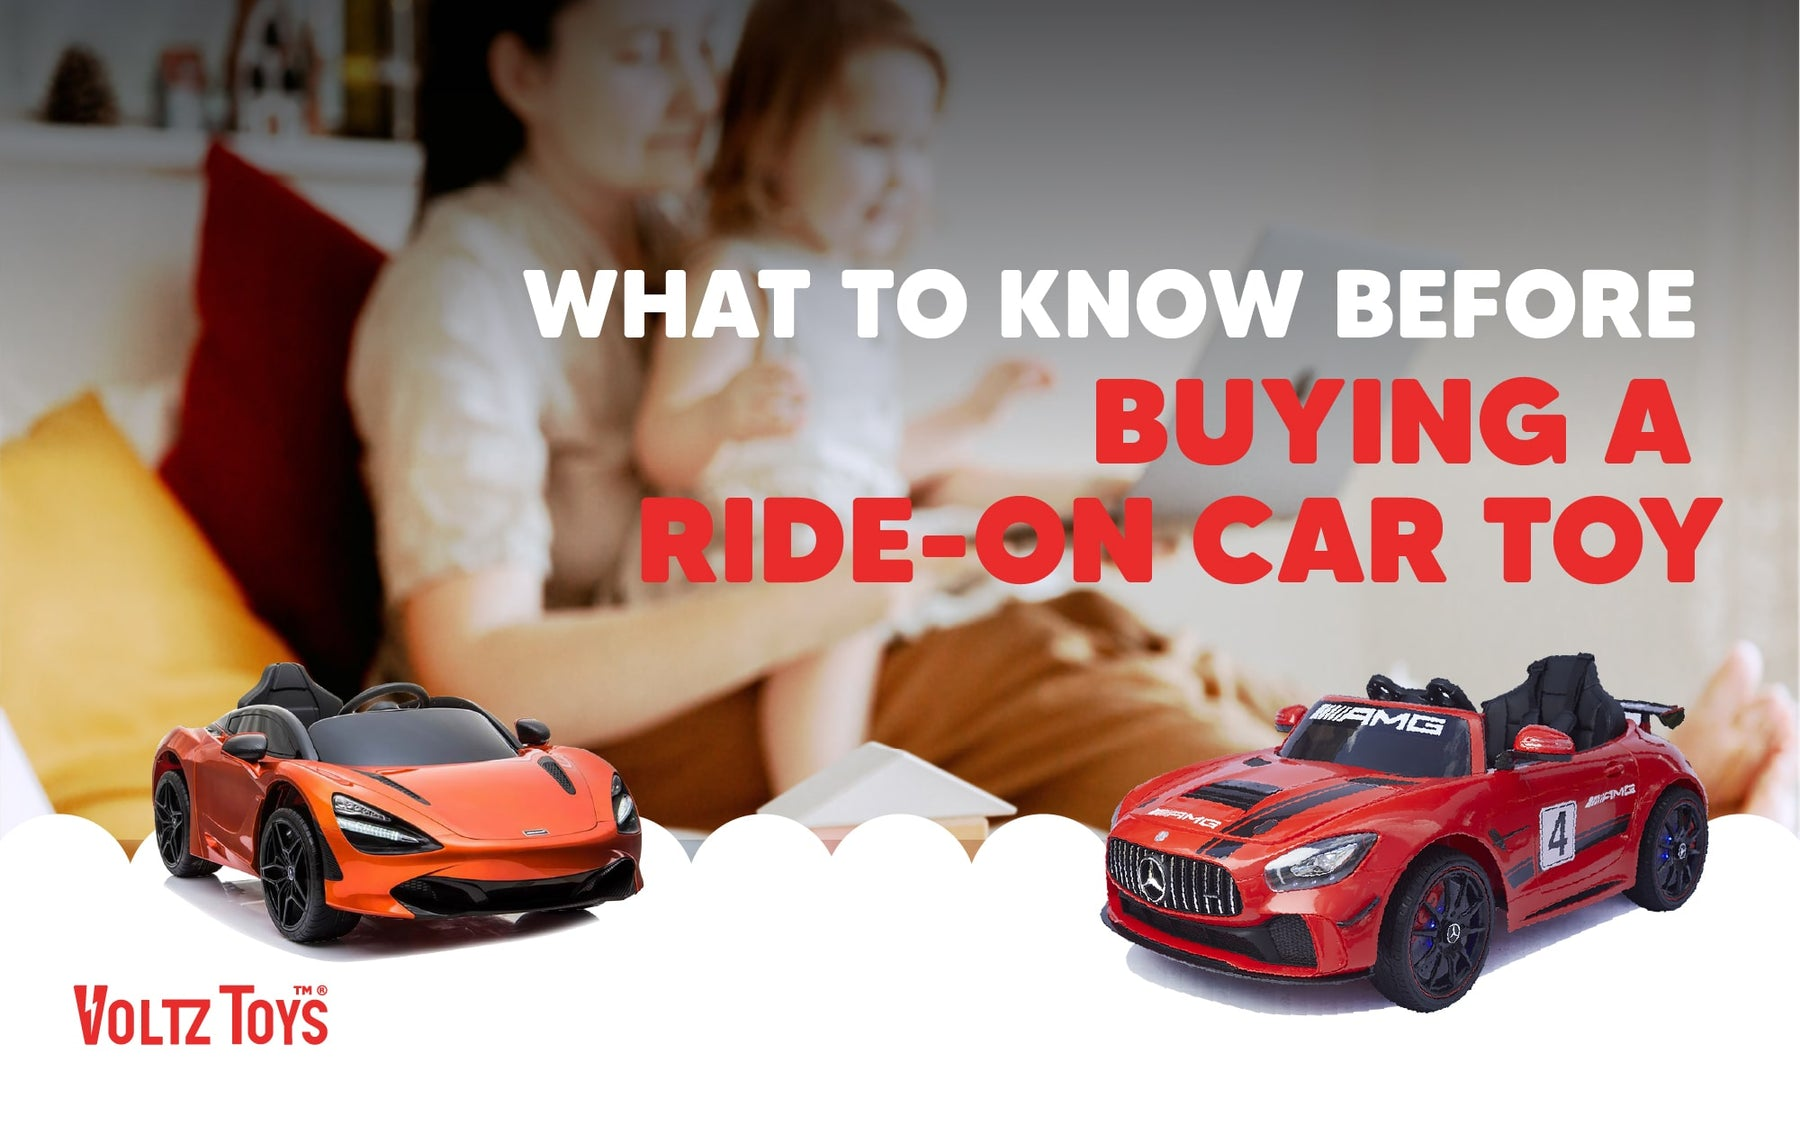 What to Know Before Buying a Ride On Car Toy